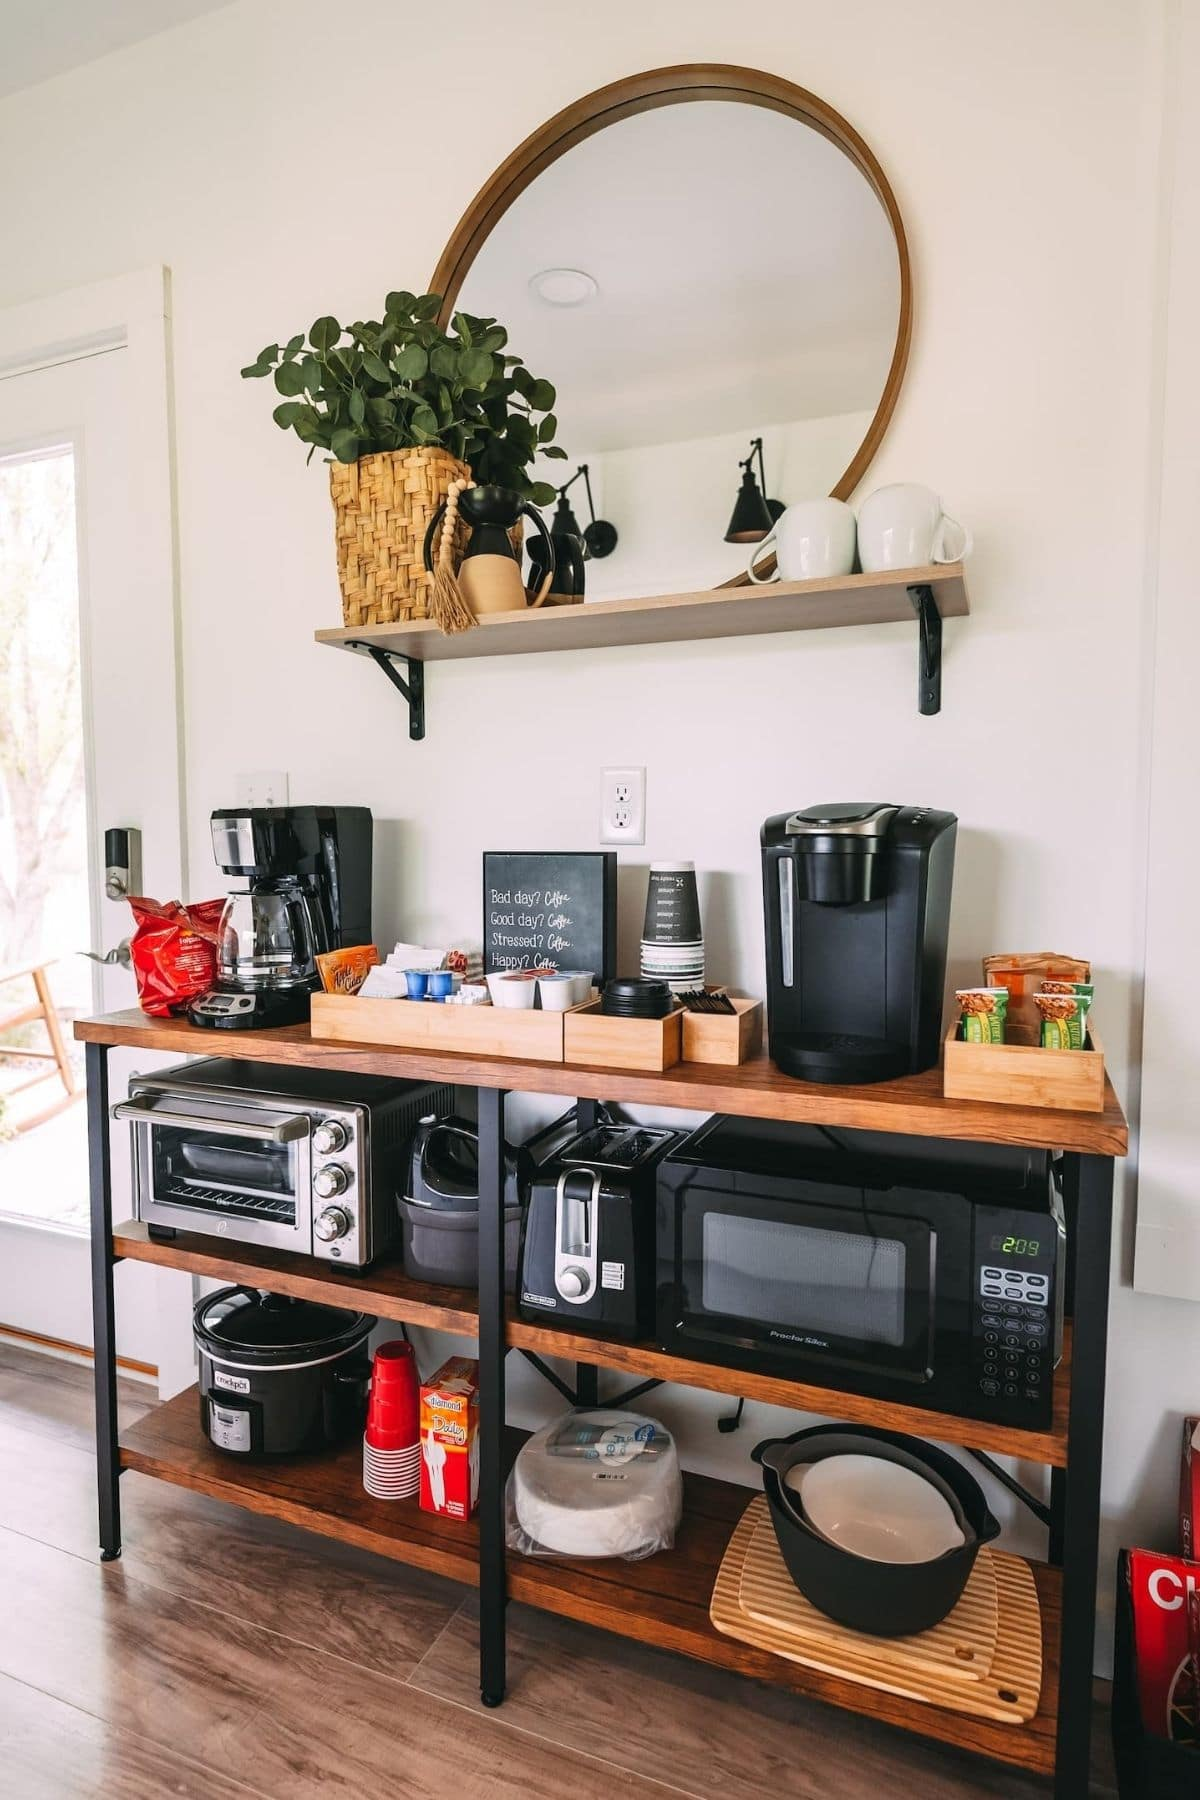 Wide black and wood shelf against white wall holding small kitchen appliances and supplies